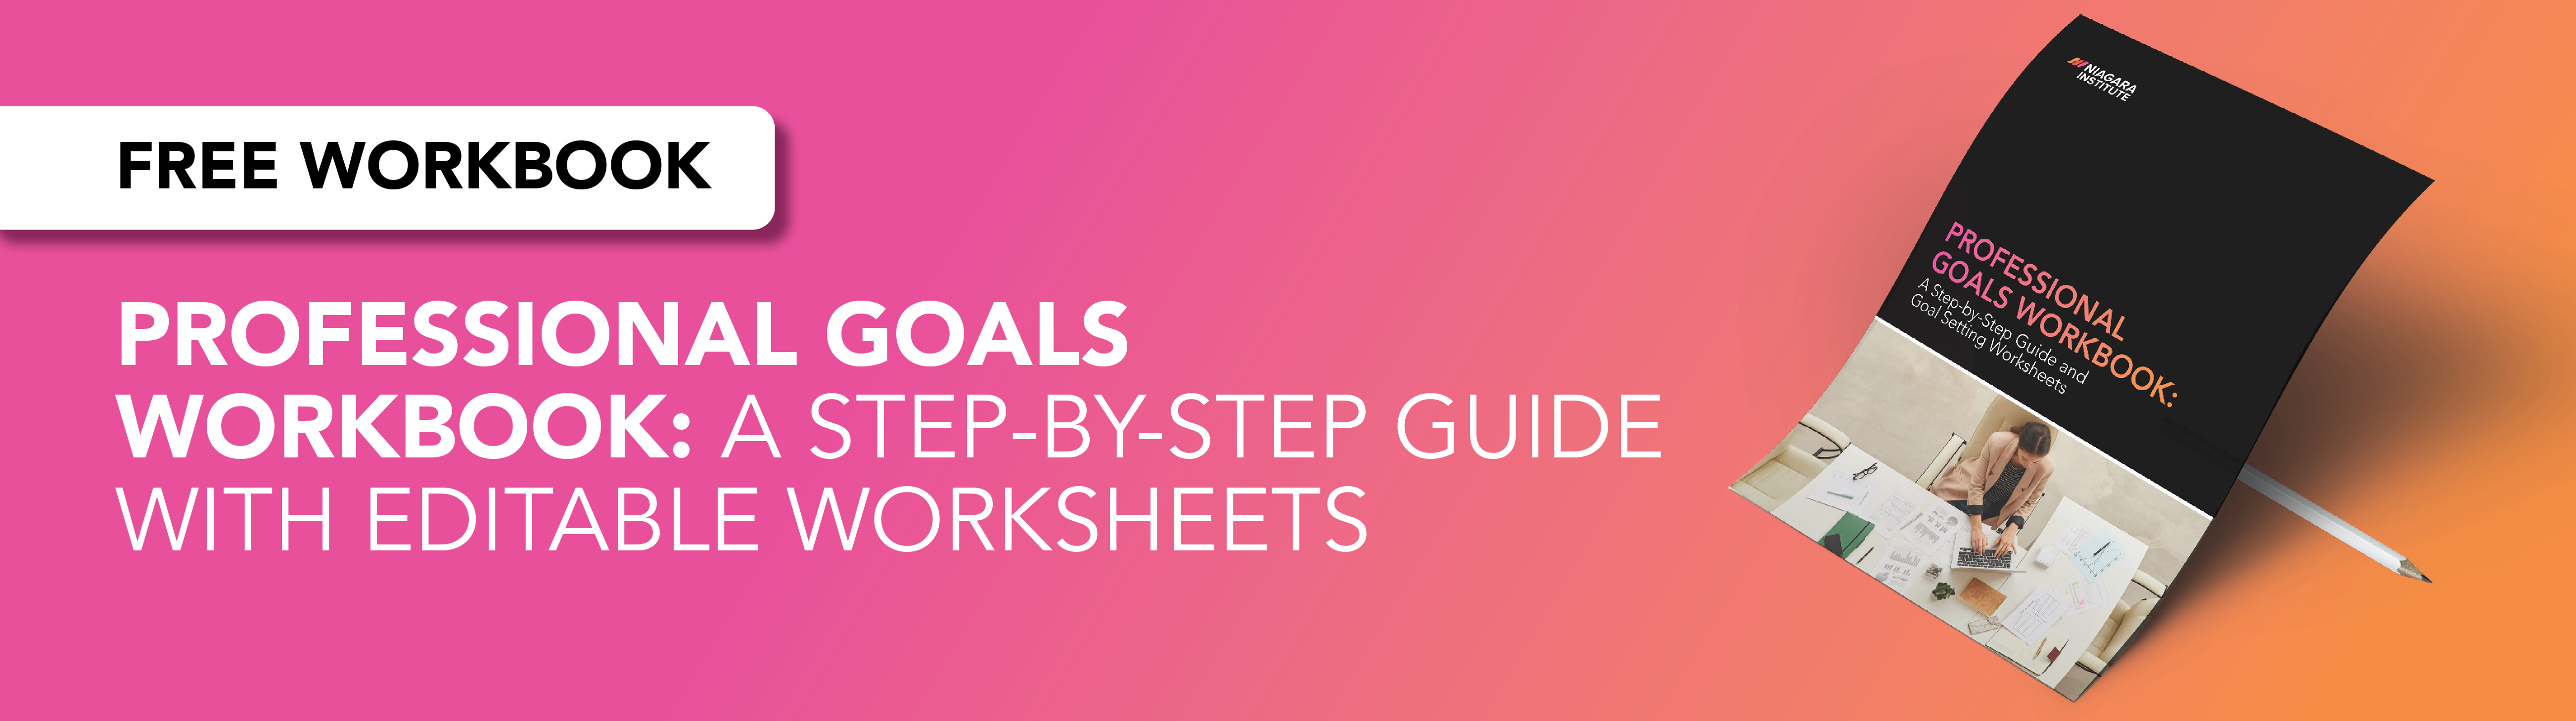 Professional Goals Workbook: A Step-by-Step Guide With Editable Worksheets